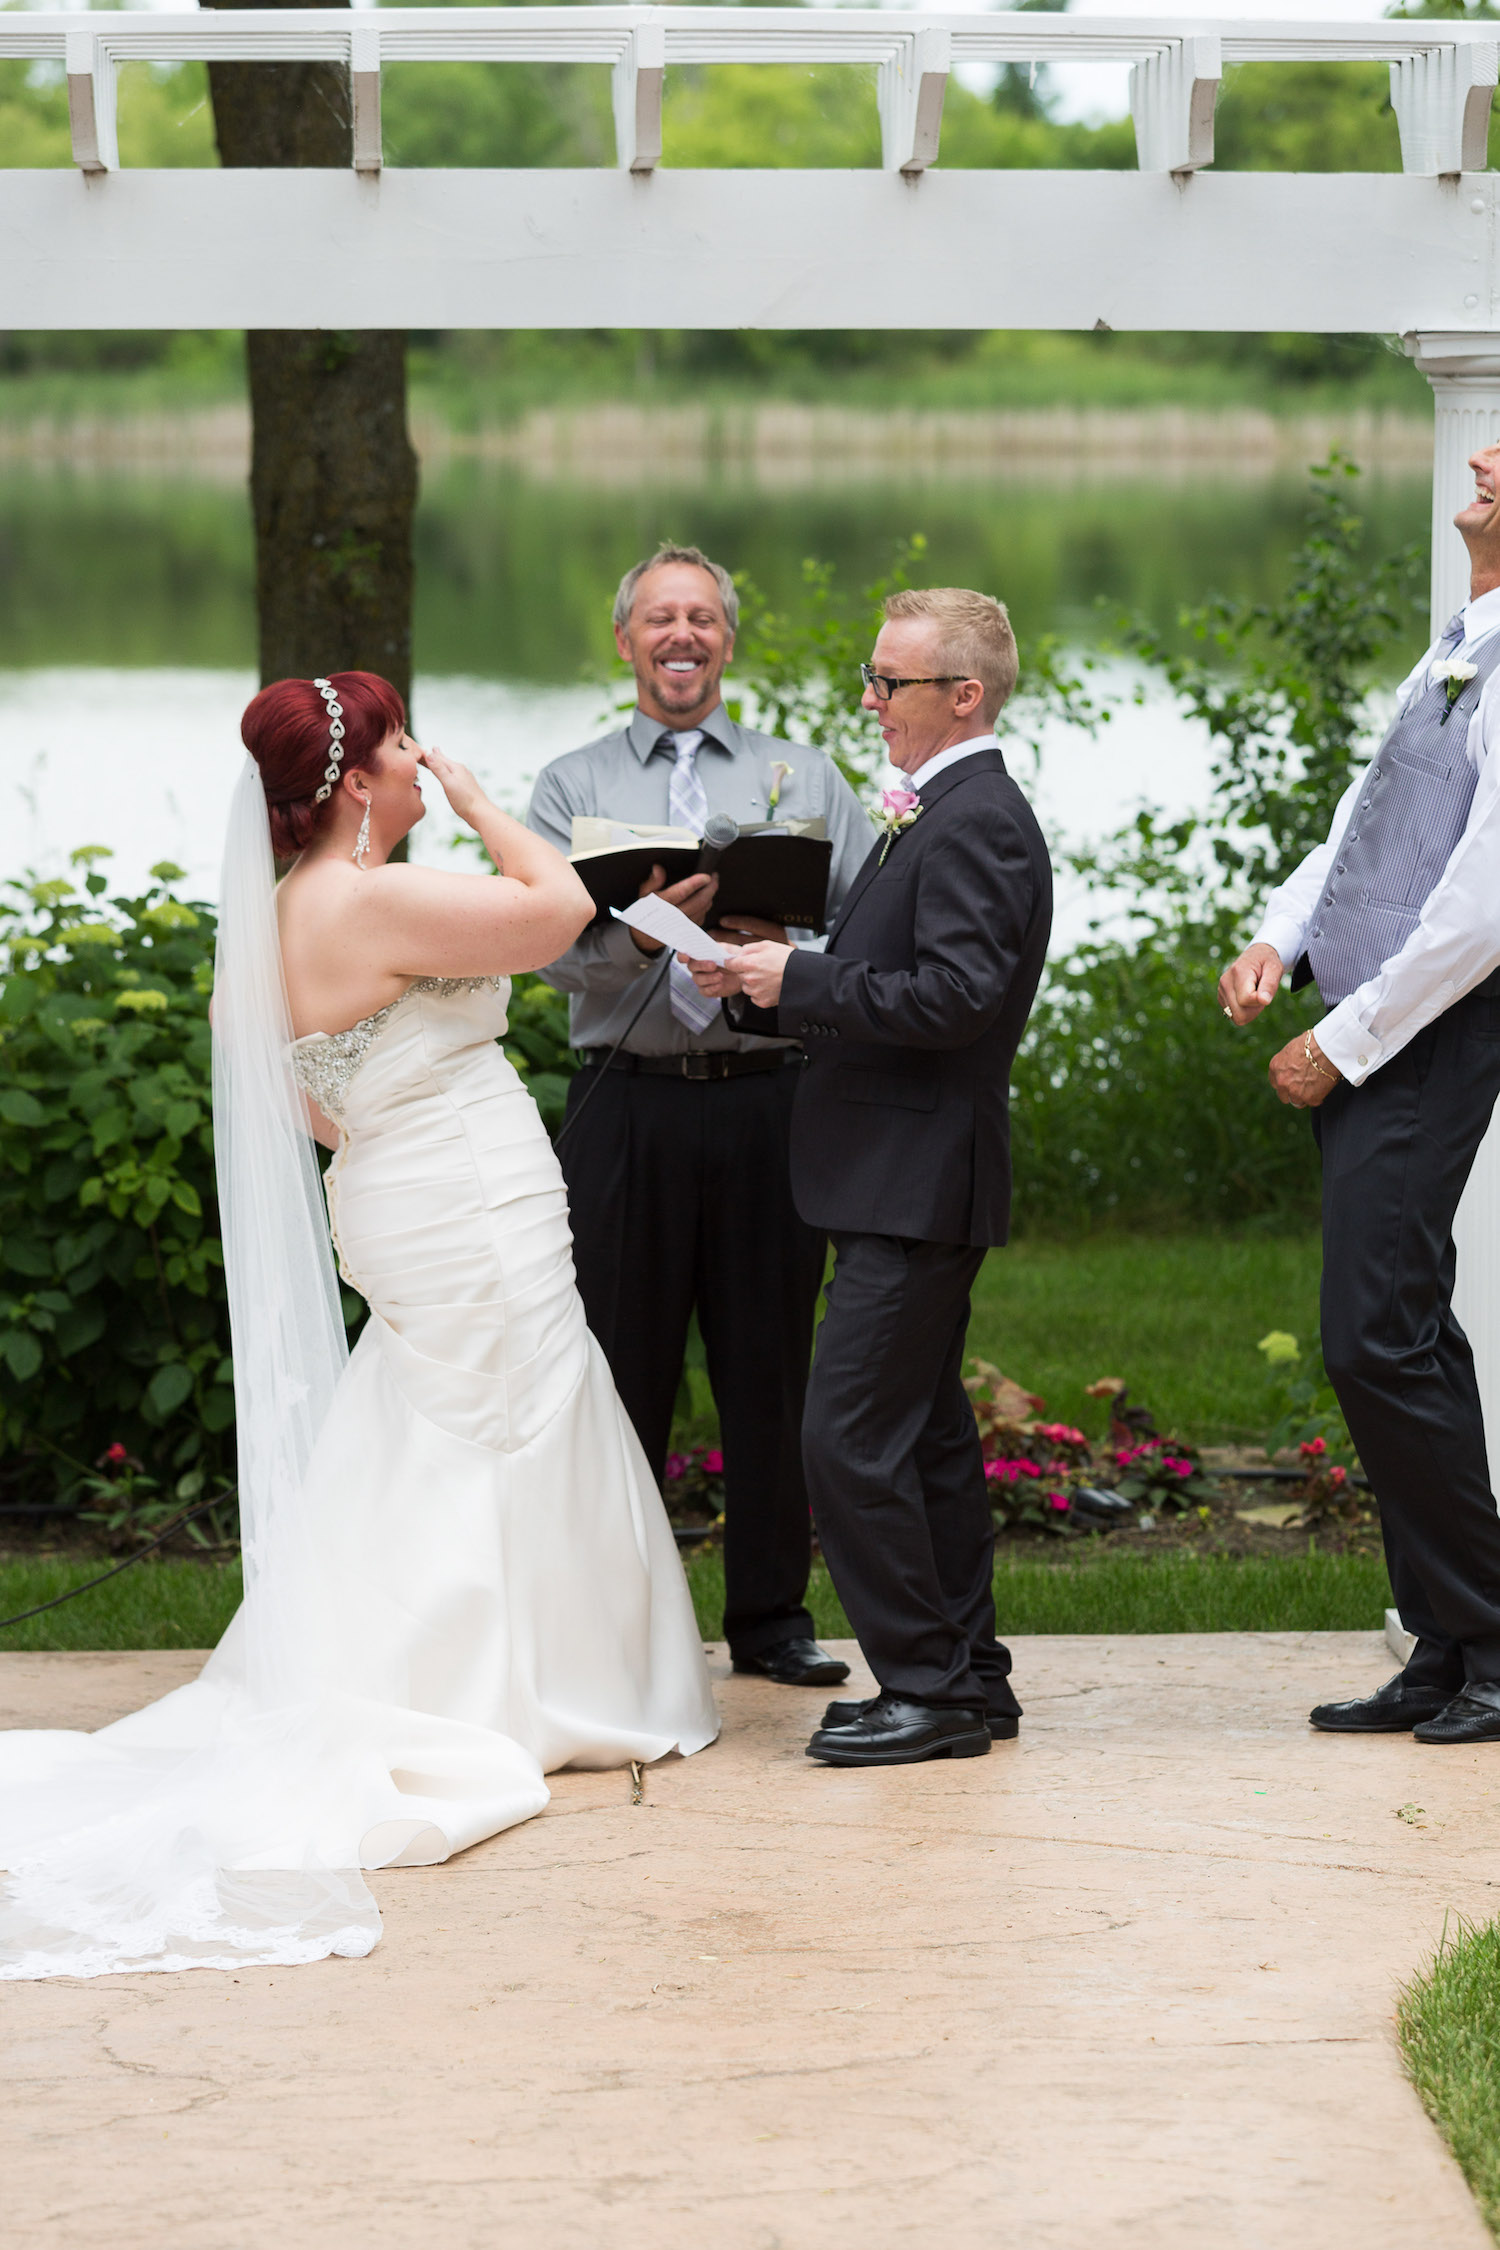 Cindyrella's Garden outdoor ceremony by the lake with a redhead bride, laughing